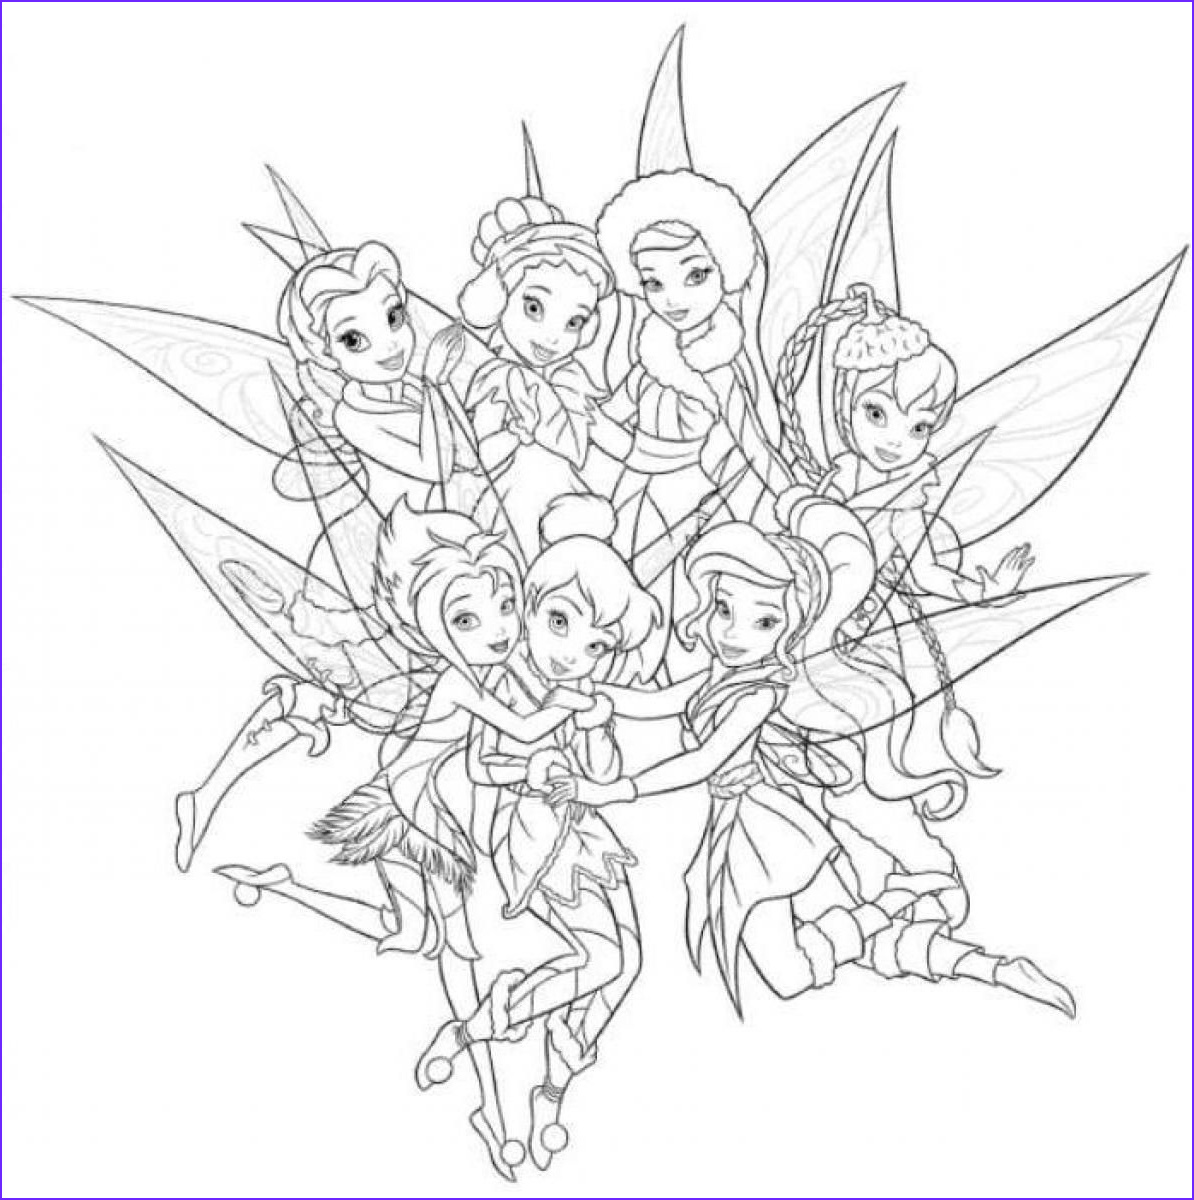 Tinklebell Coloring Page Inspirational Images Tinkerbell and Periwinkle Coloring Pages Coloring Home